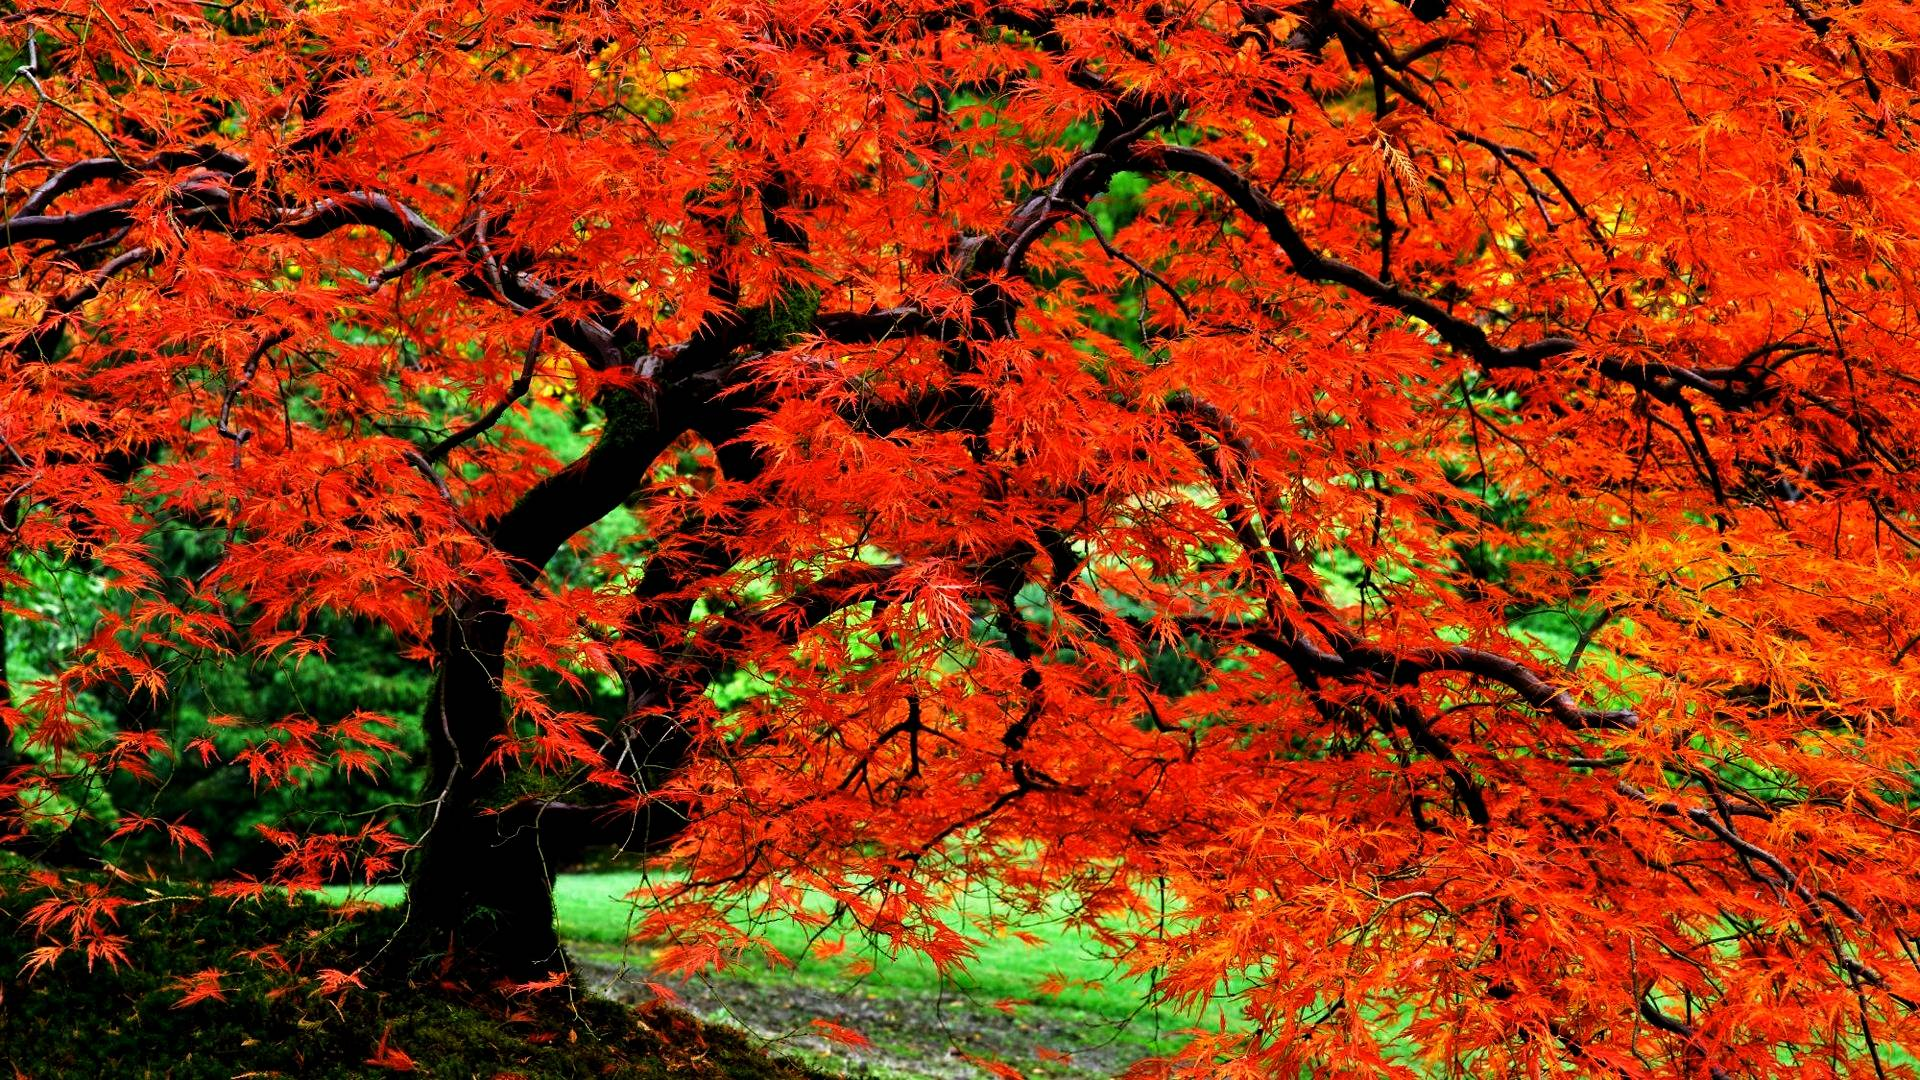 Autumn Tree Wallpaper 61 Images: Autumn Tree Wallpapers